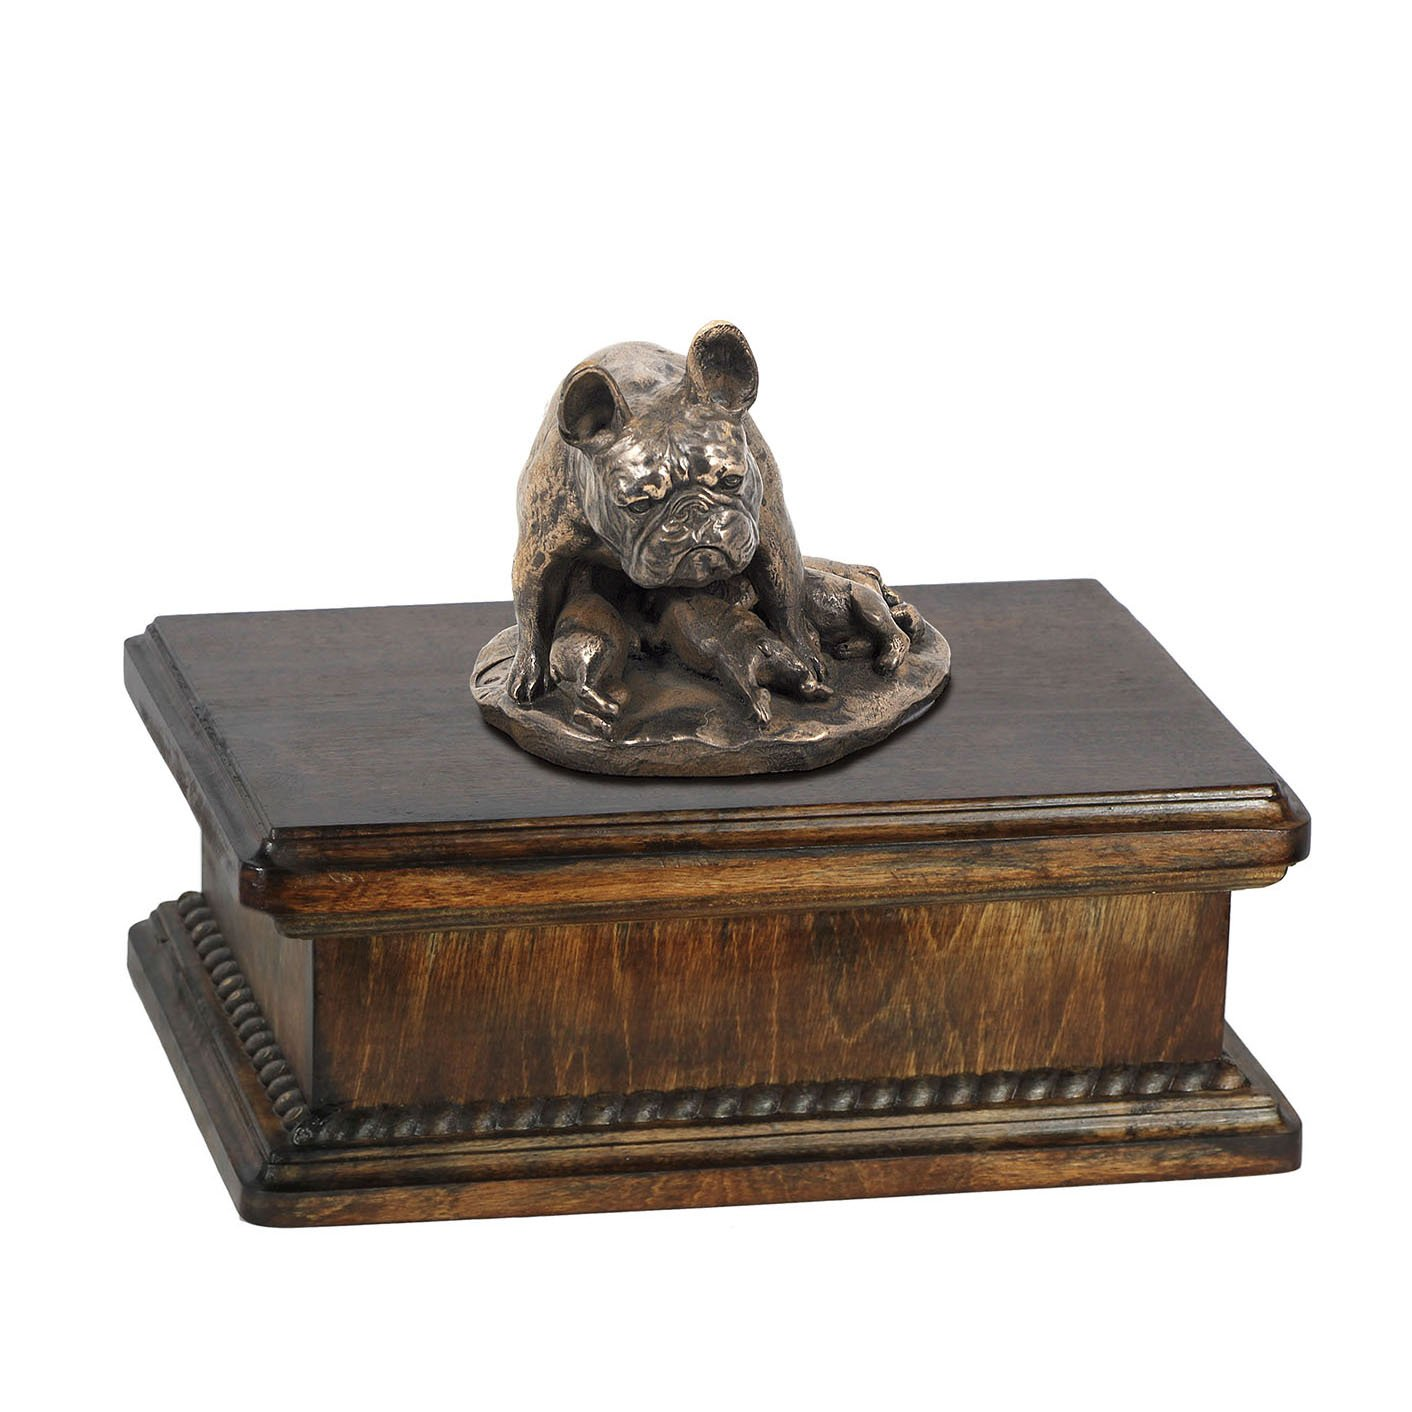 French Bulldog (mama), memorial, urn for dog's ashes, with dog statue, exclusive, ArtDog